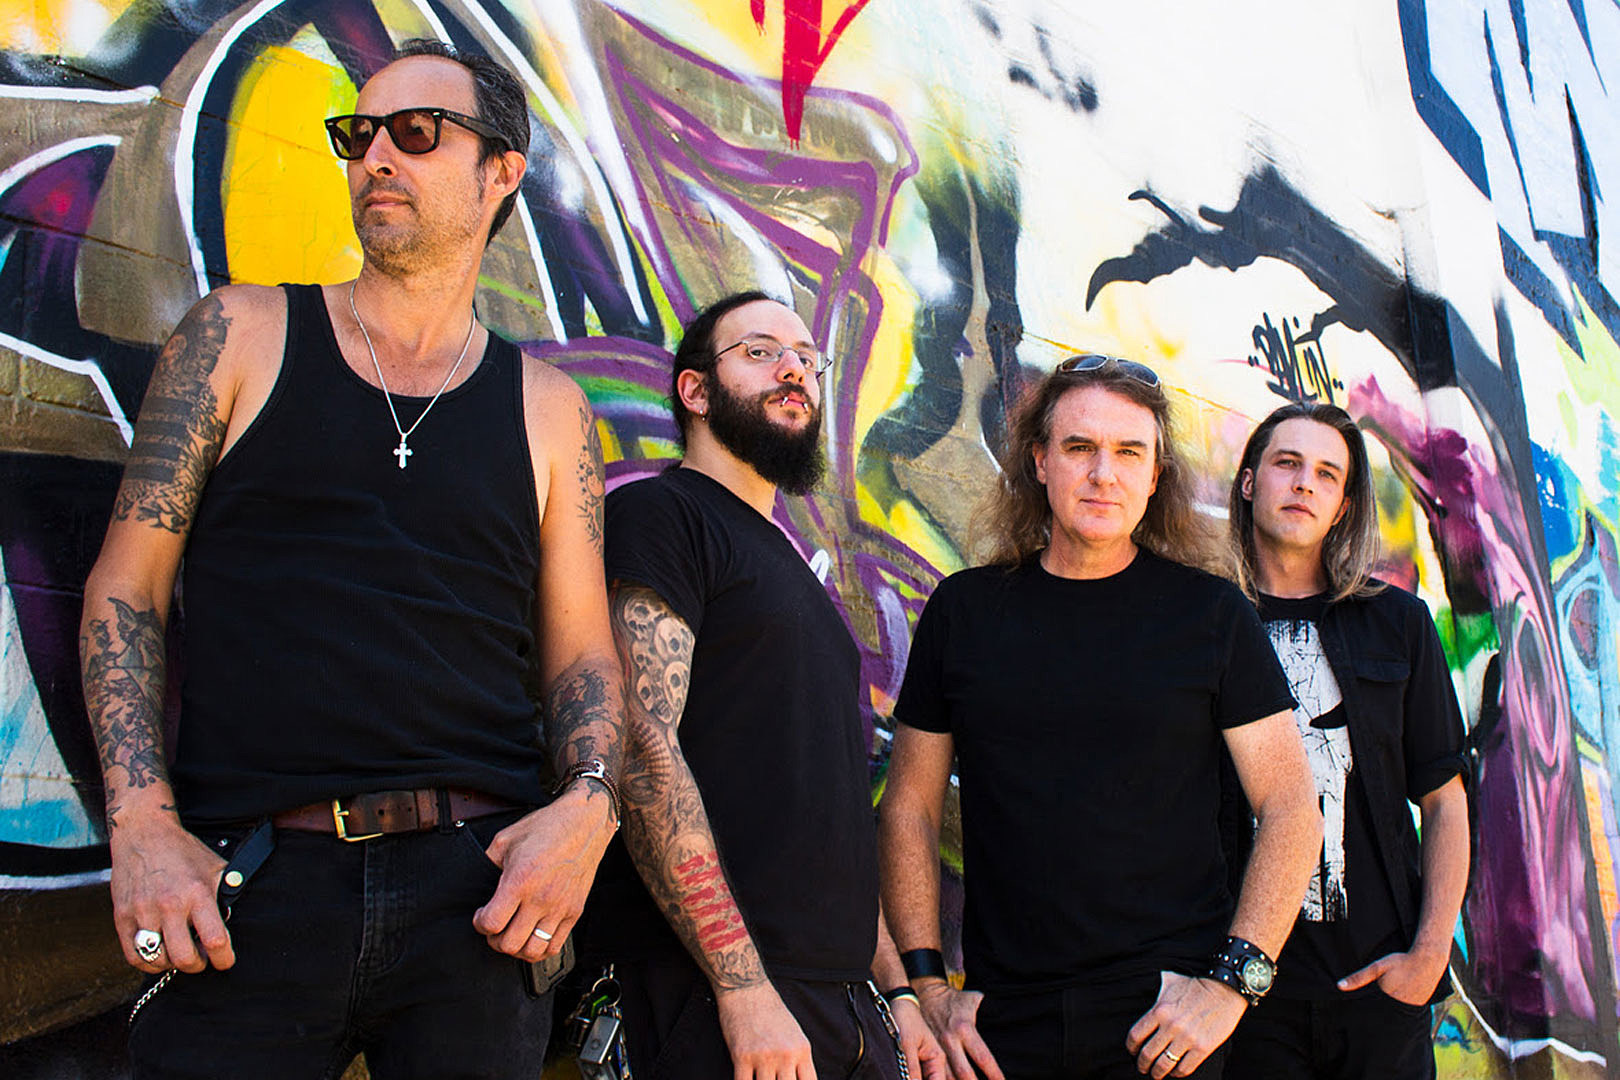 David Ellefson's New Band The Lucid Drops Second Single 'Damned'